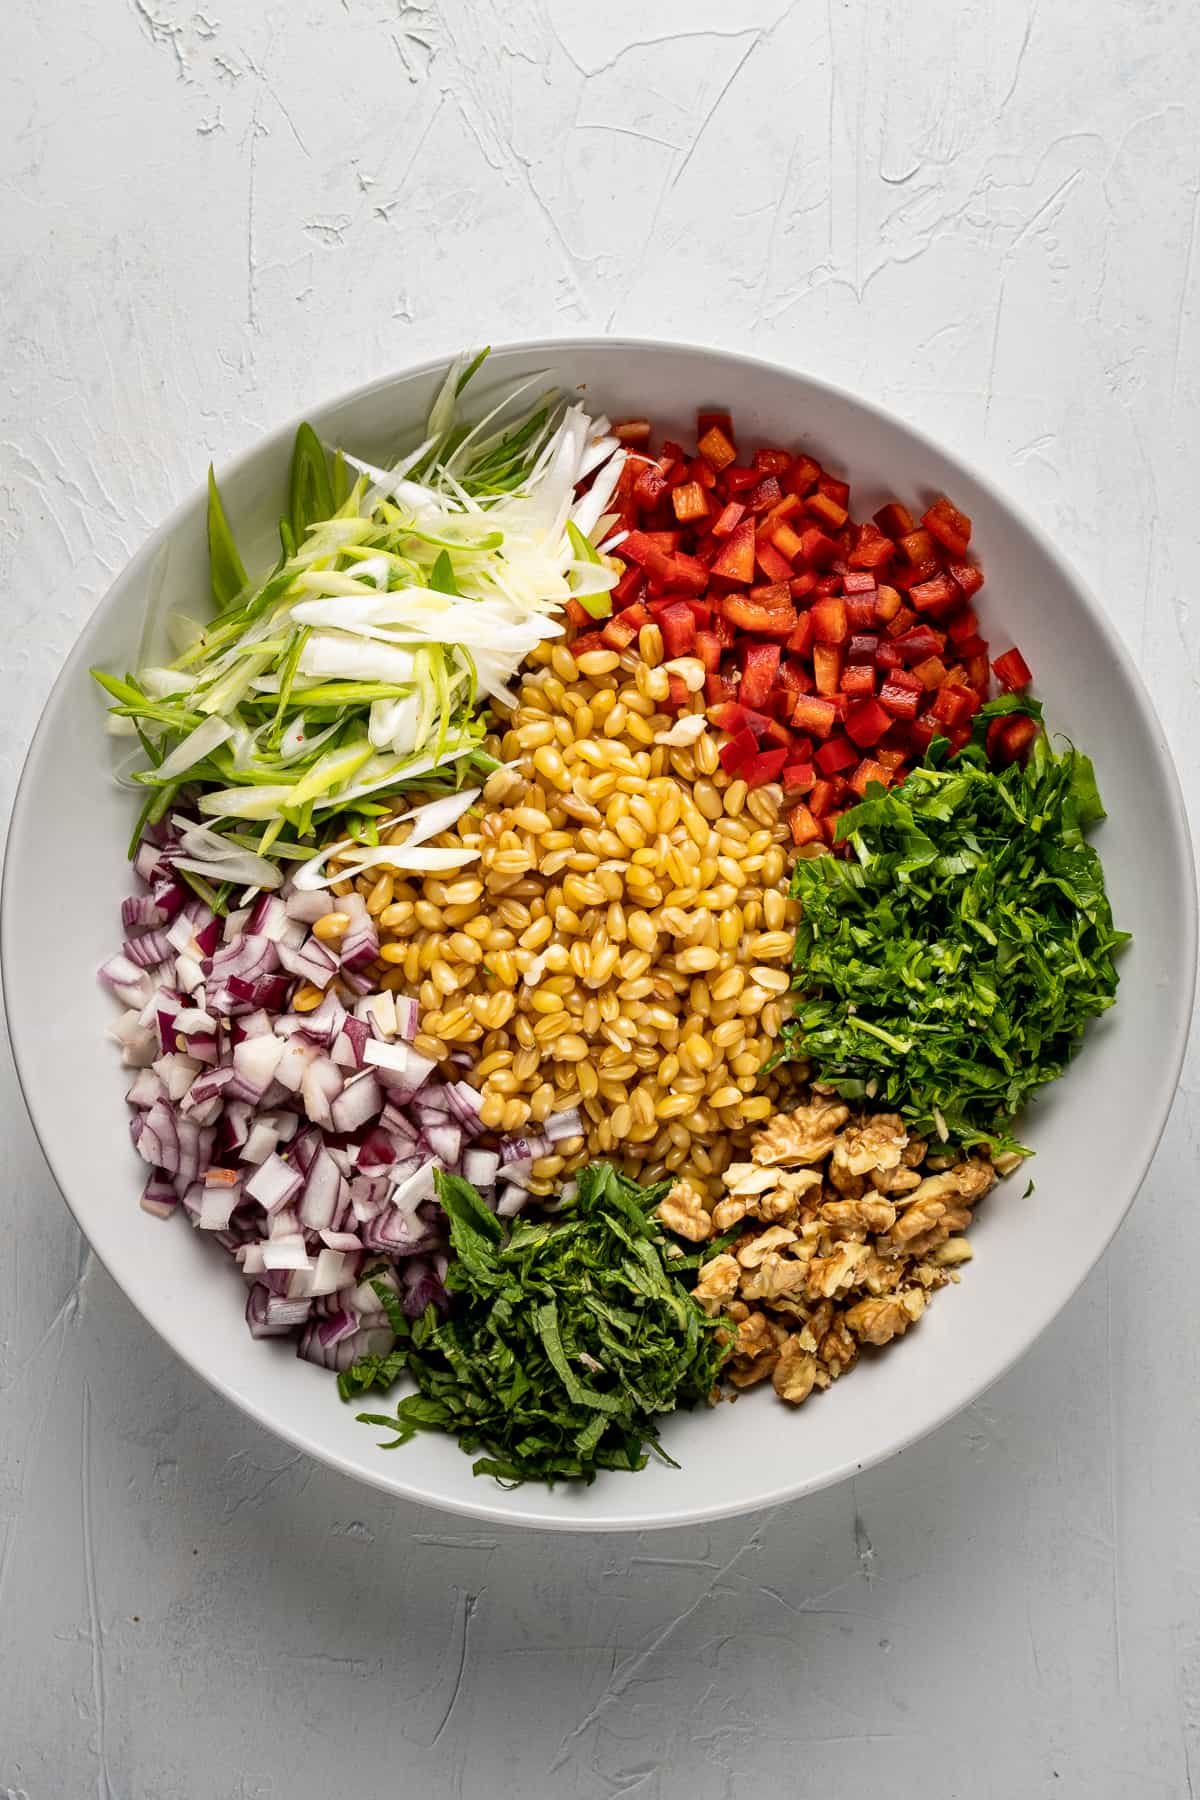 Cooked wheat berries, diced red onions and sweet red peppers, chopped herbs and walnuts arranged in a white bowl.